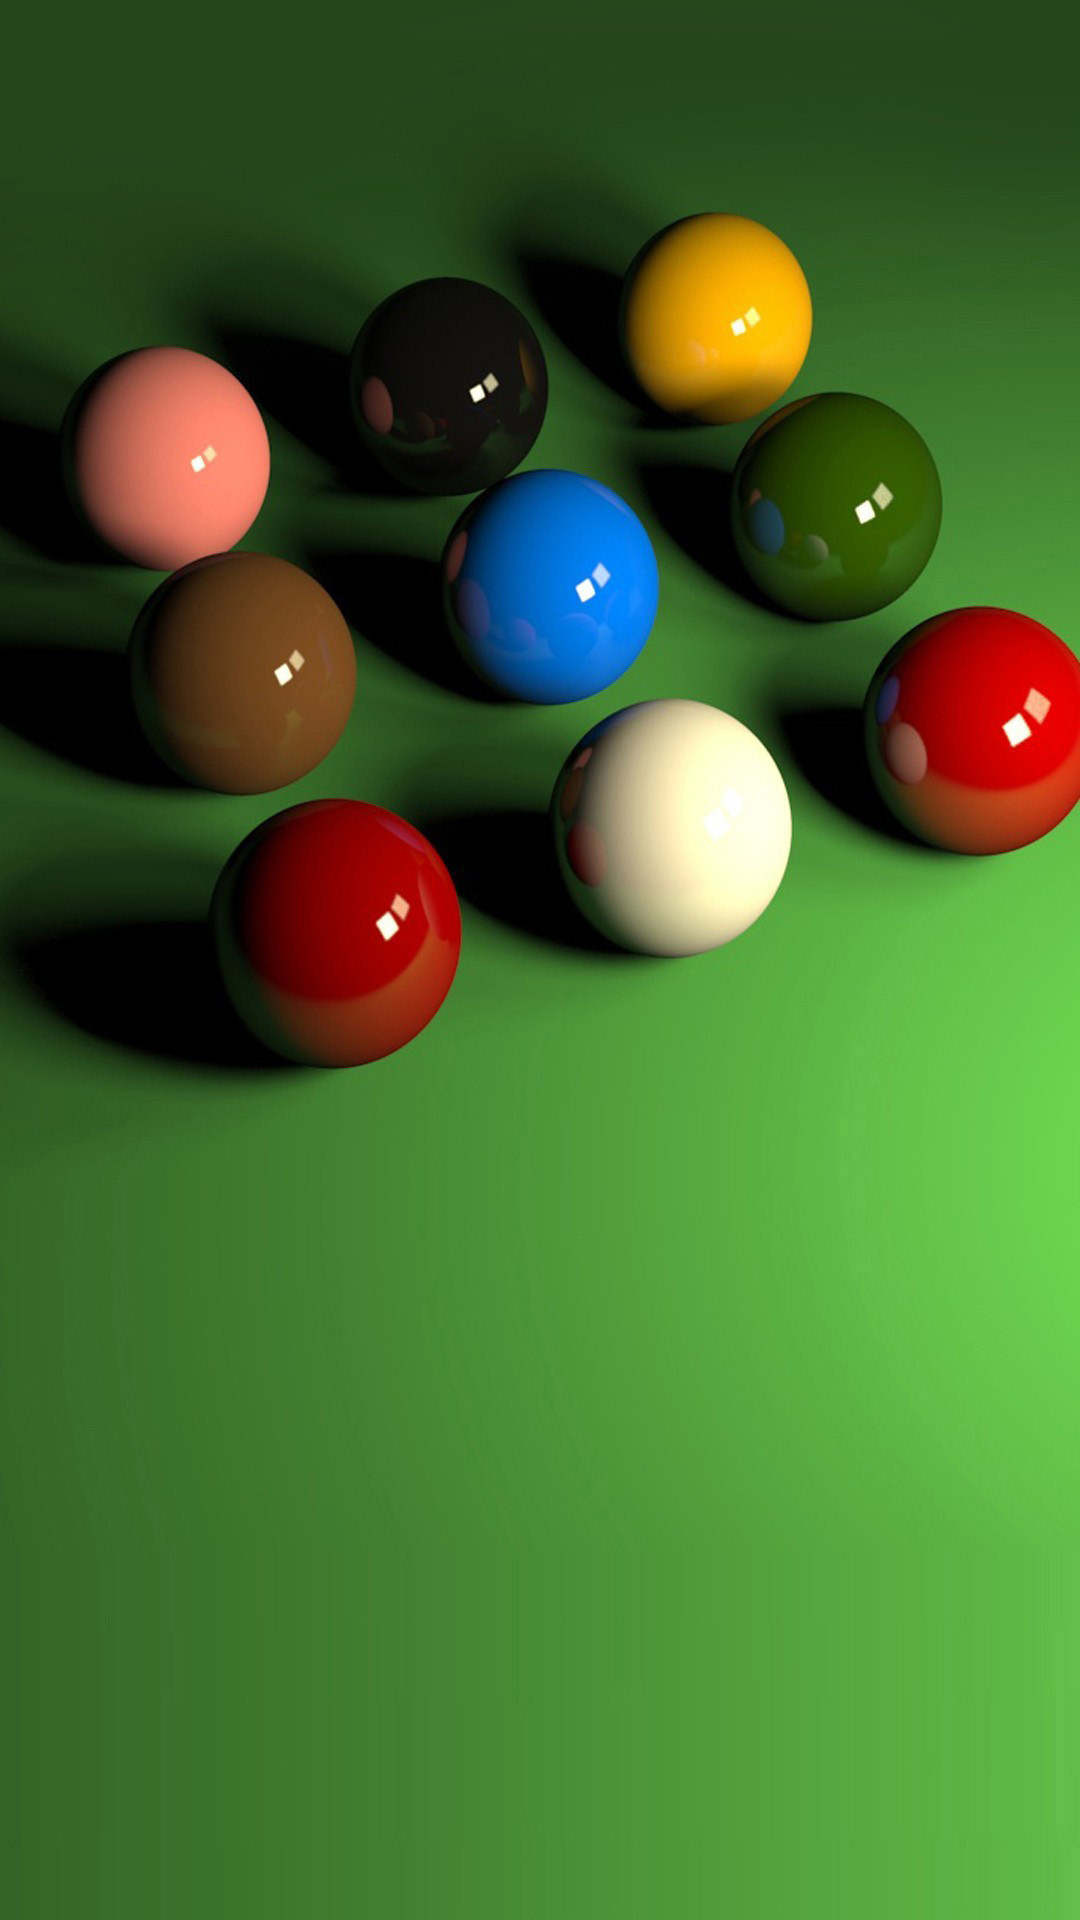 Billiards Wallpaper 58 Images